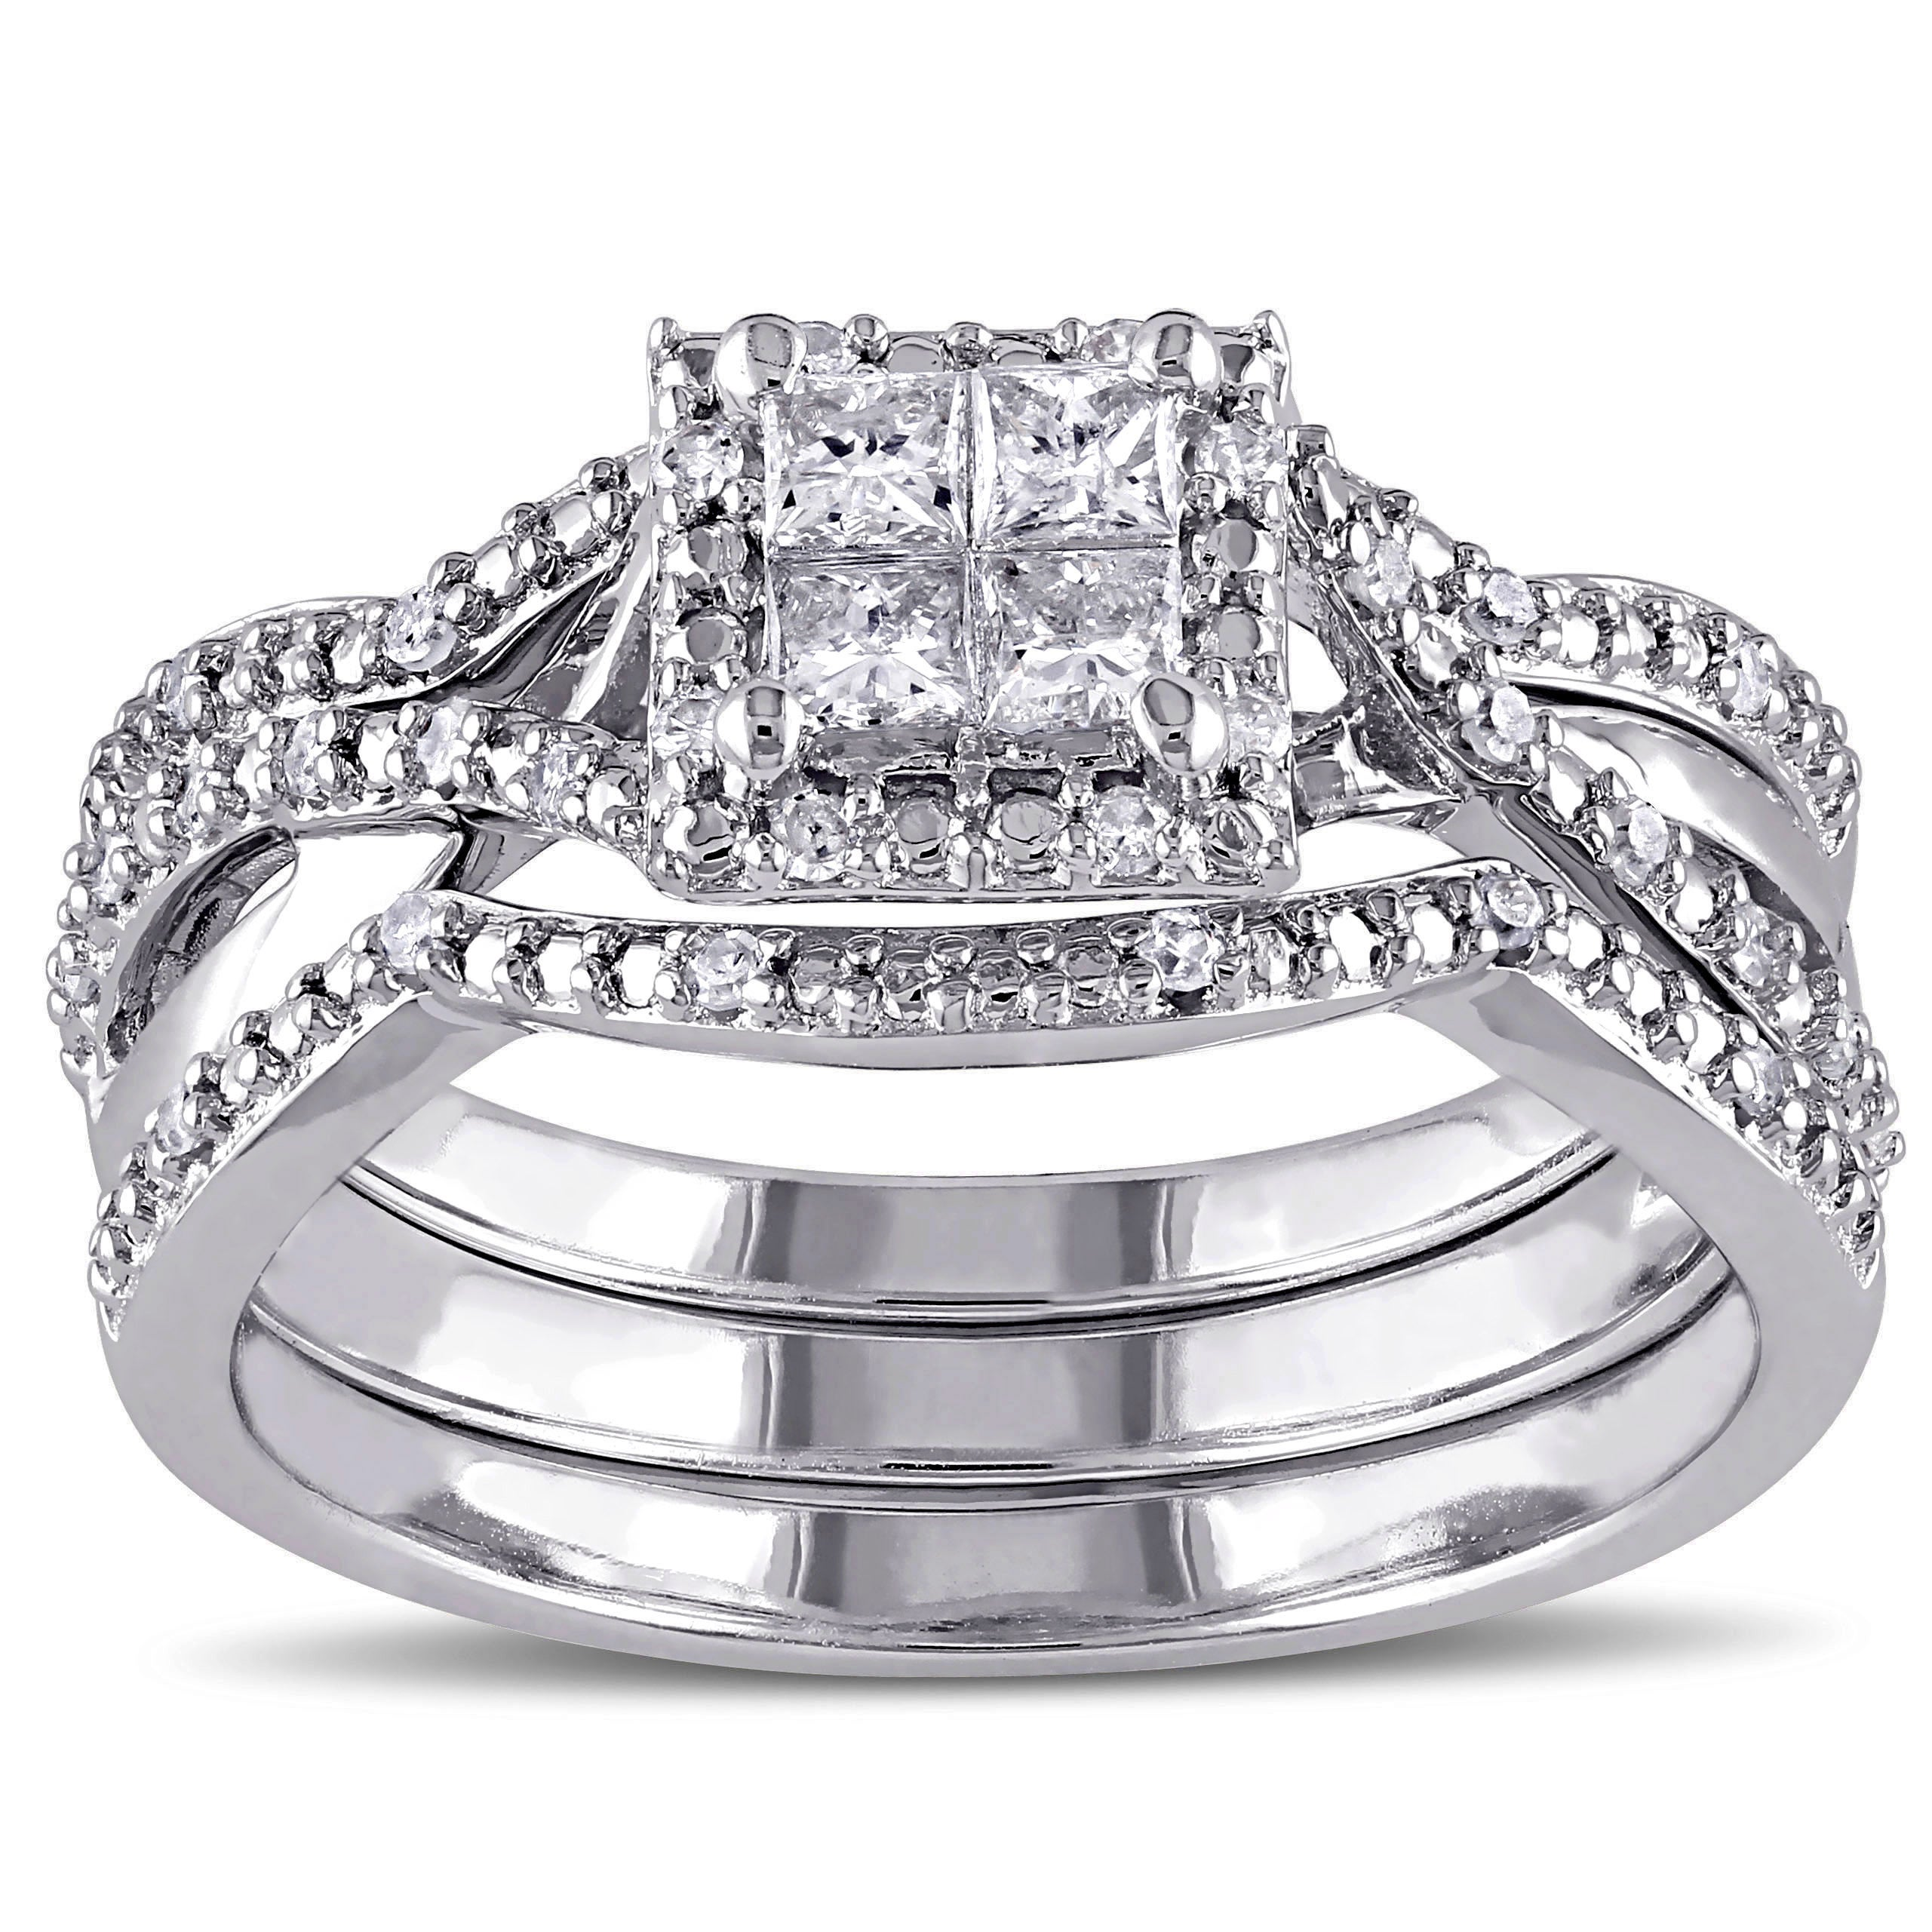 platinaire com quad forever rings walmart always ring t engagement ip diamond w wedding carat